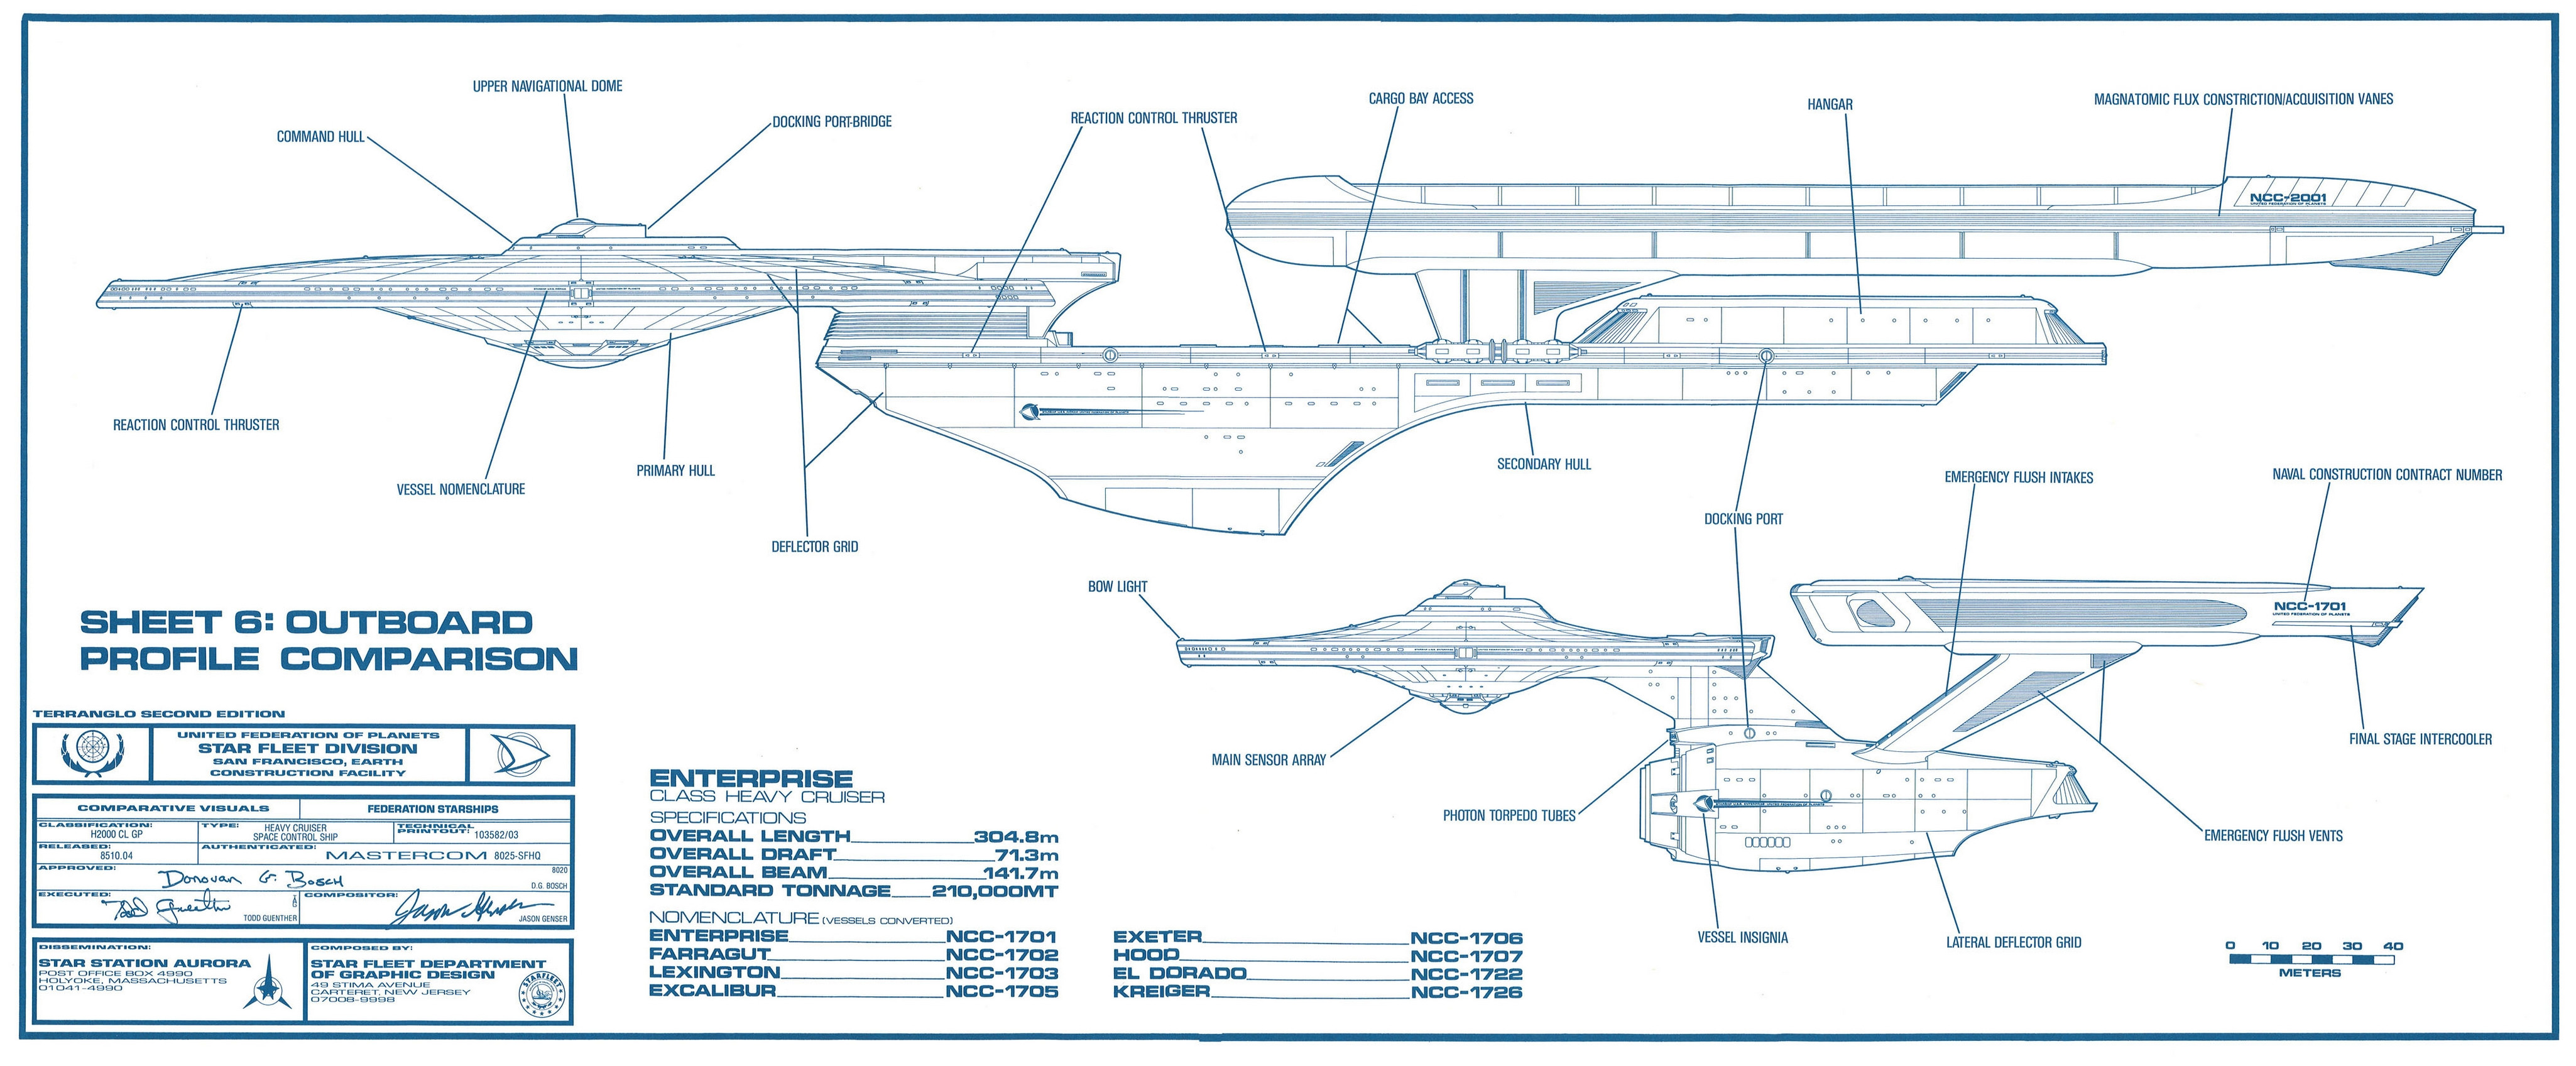 Excelsior Class Blueprints Comparison Chart